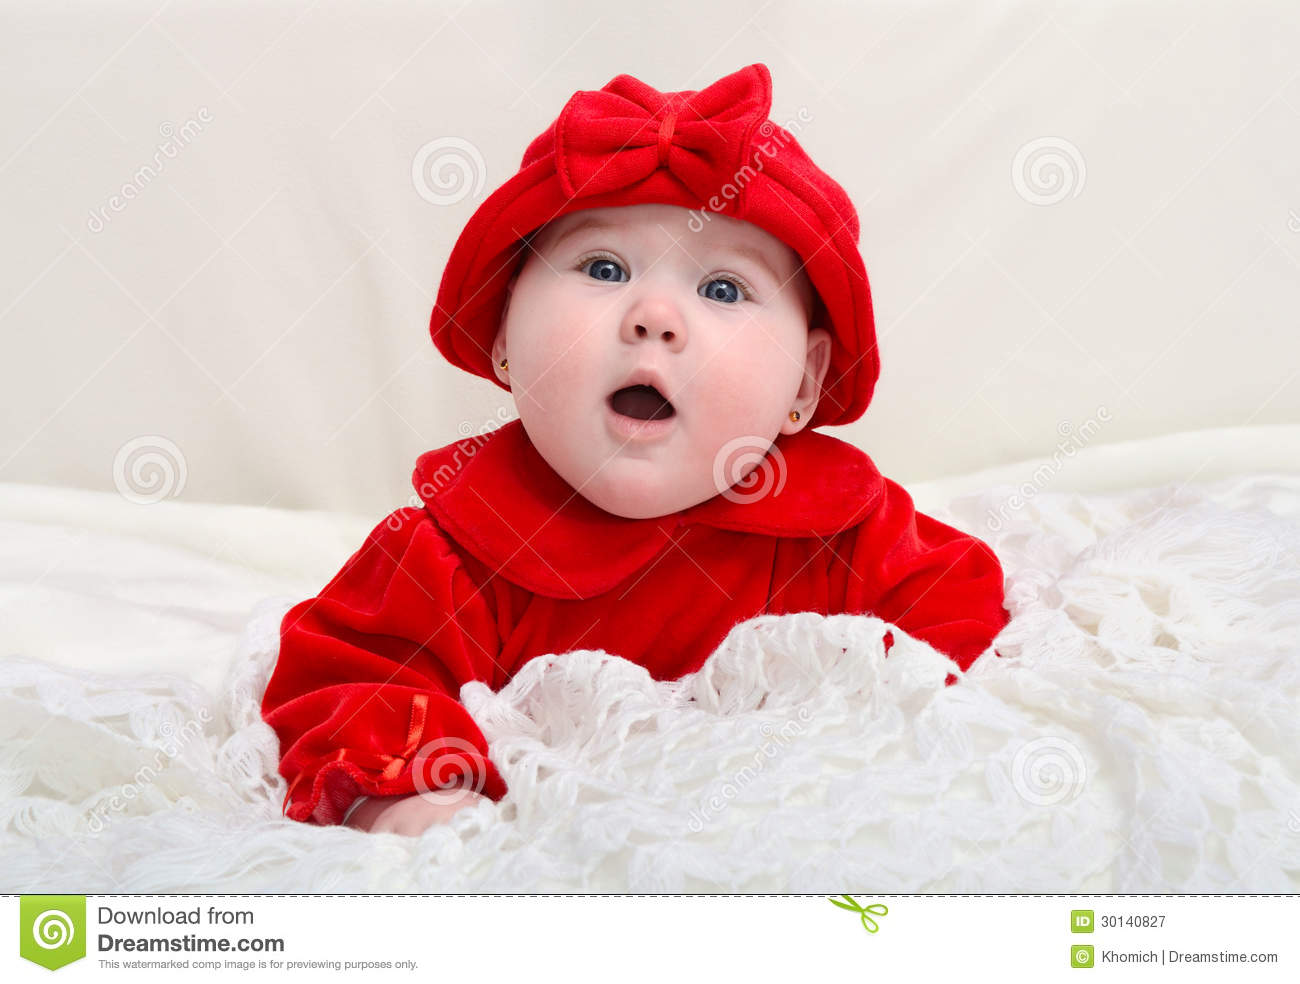 cute baby surprised face expression stock photos - 2,276 images